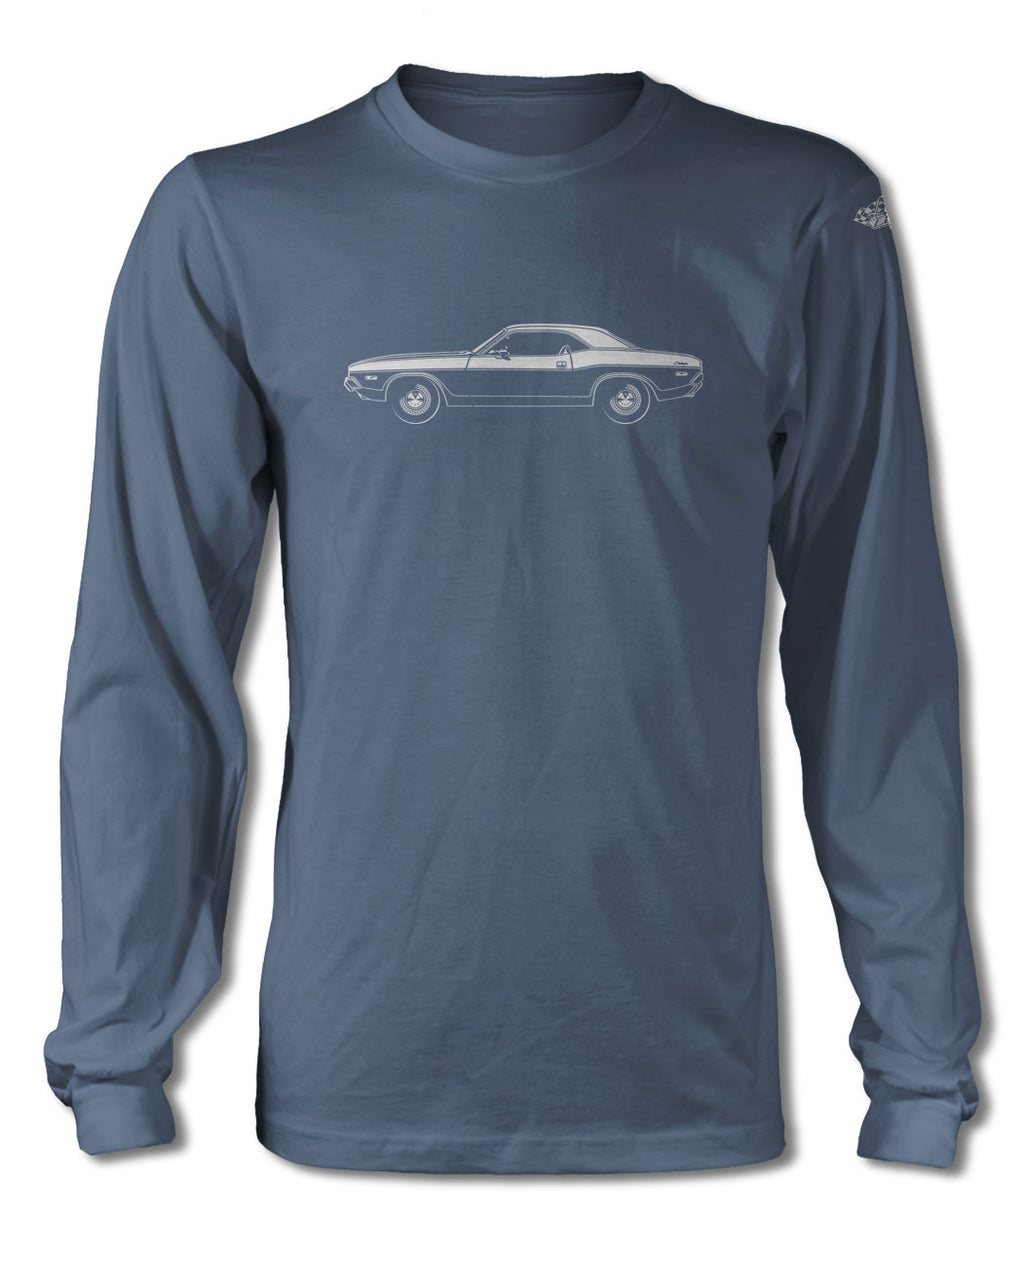 1972 Dodge Challenger Base Hardtop T-Shirt - Long Sleeves - Side View